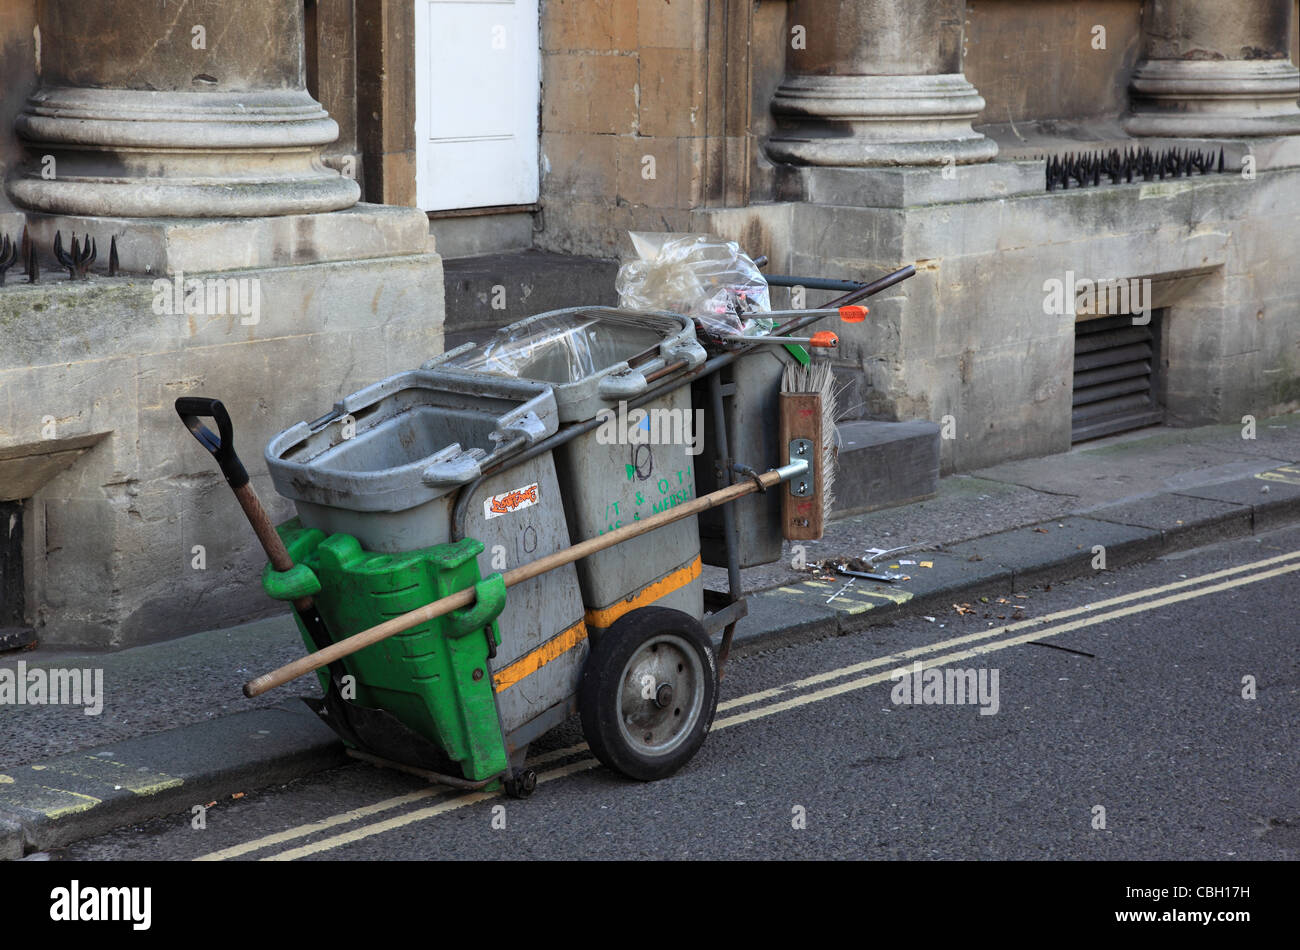 Street cleaner in Bath, England Stock Photo